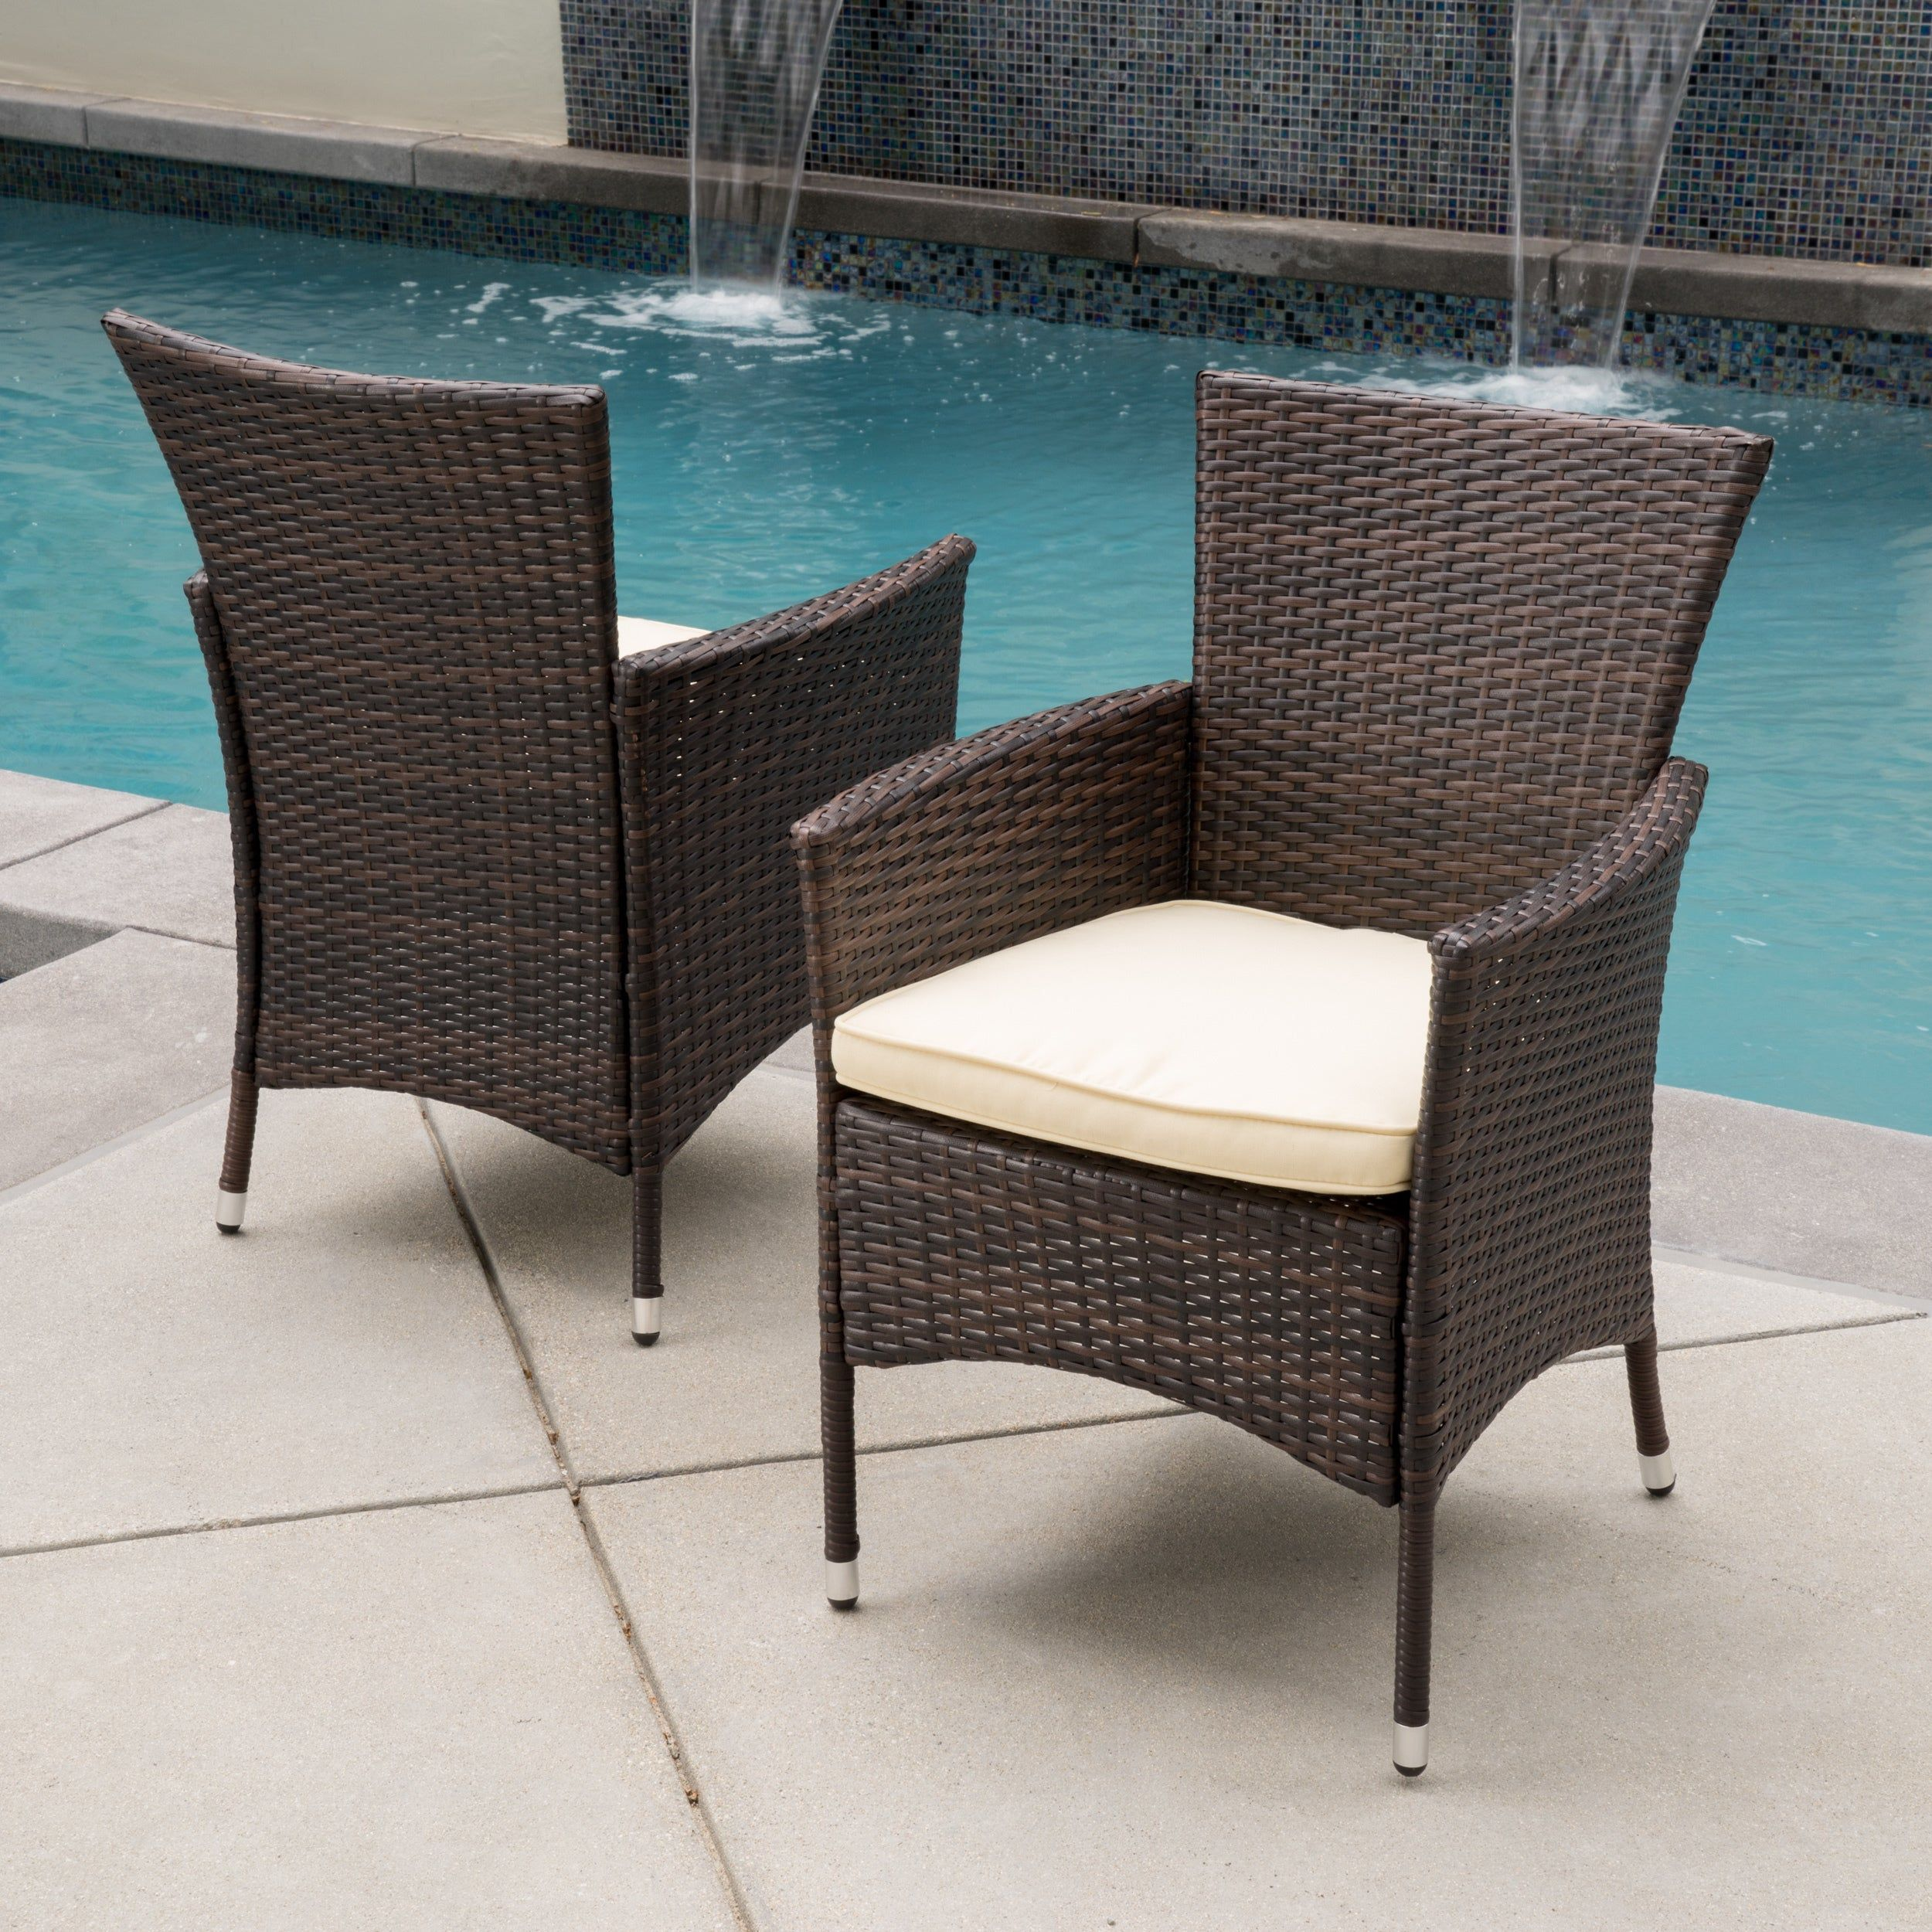 Strange Christopher Knight Home Malta Outdoor Wicker Dining Chair Alphanode Cool Chair Designs And Ideas Alphanodeonline